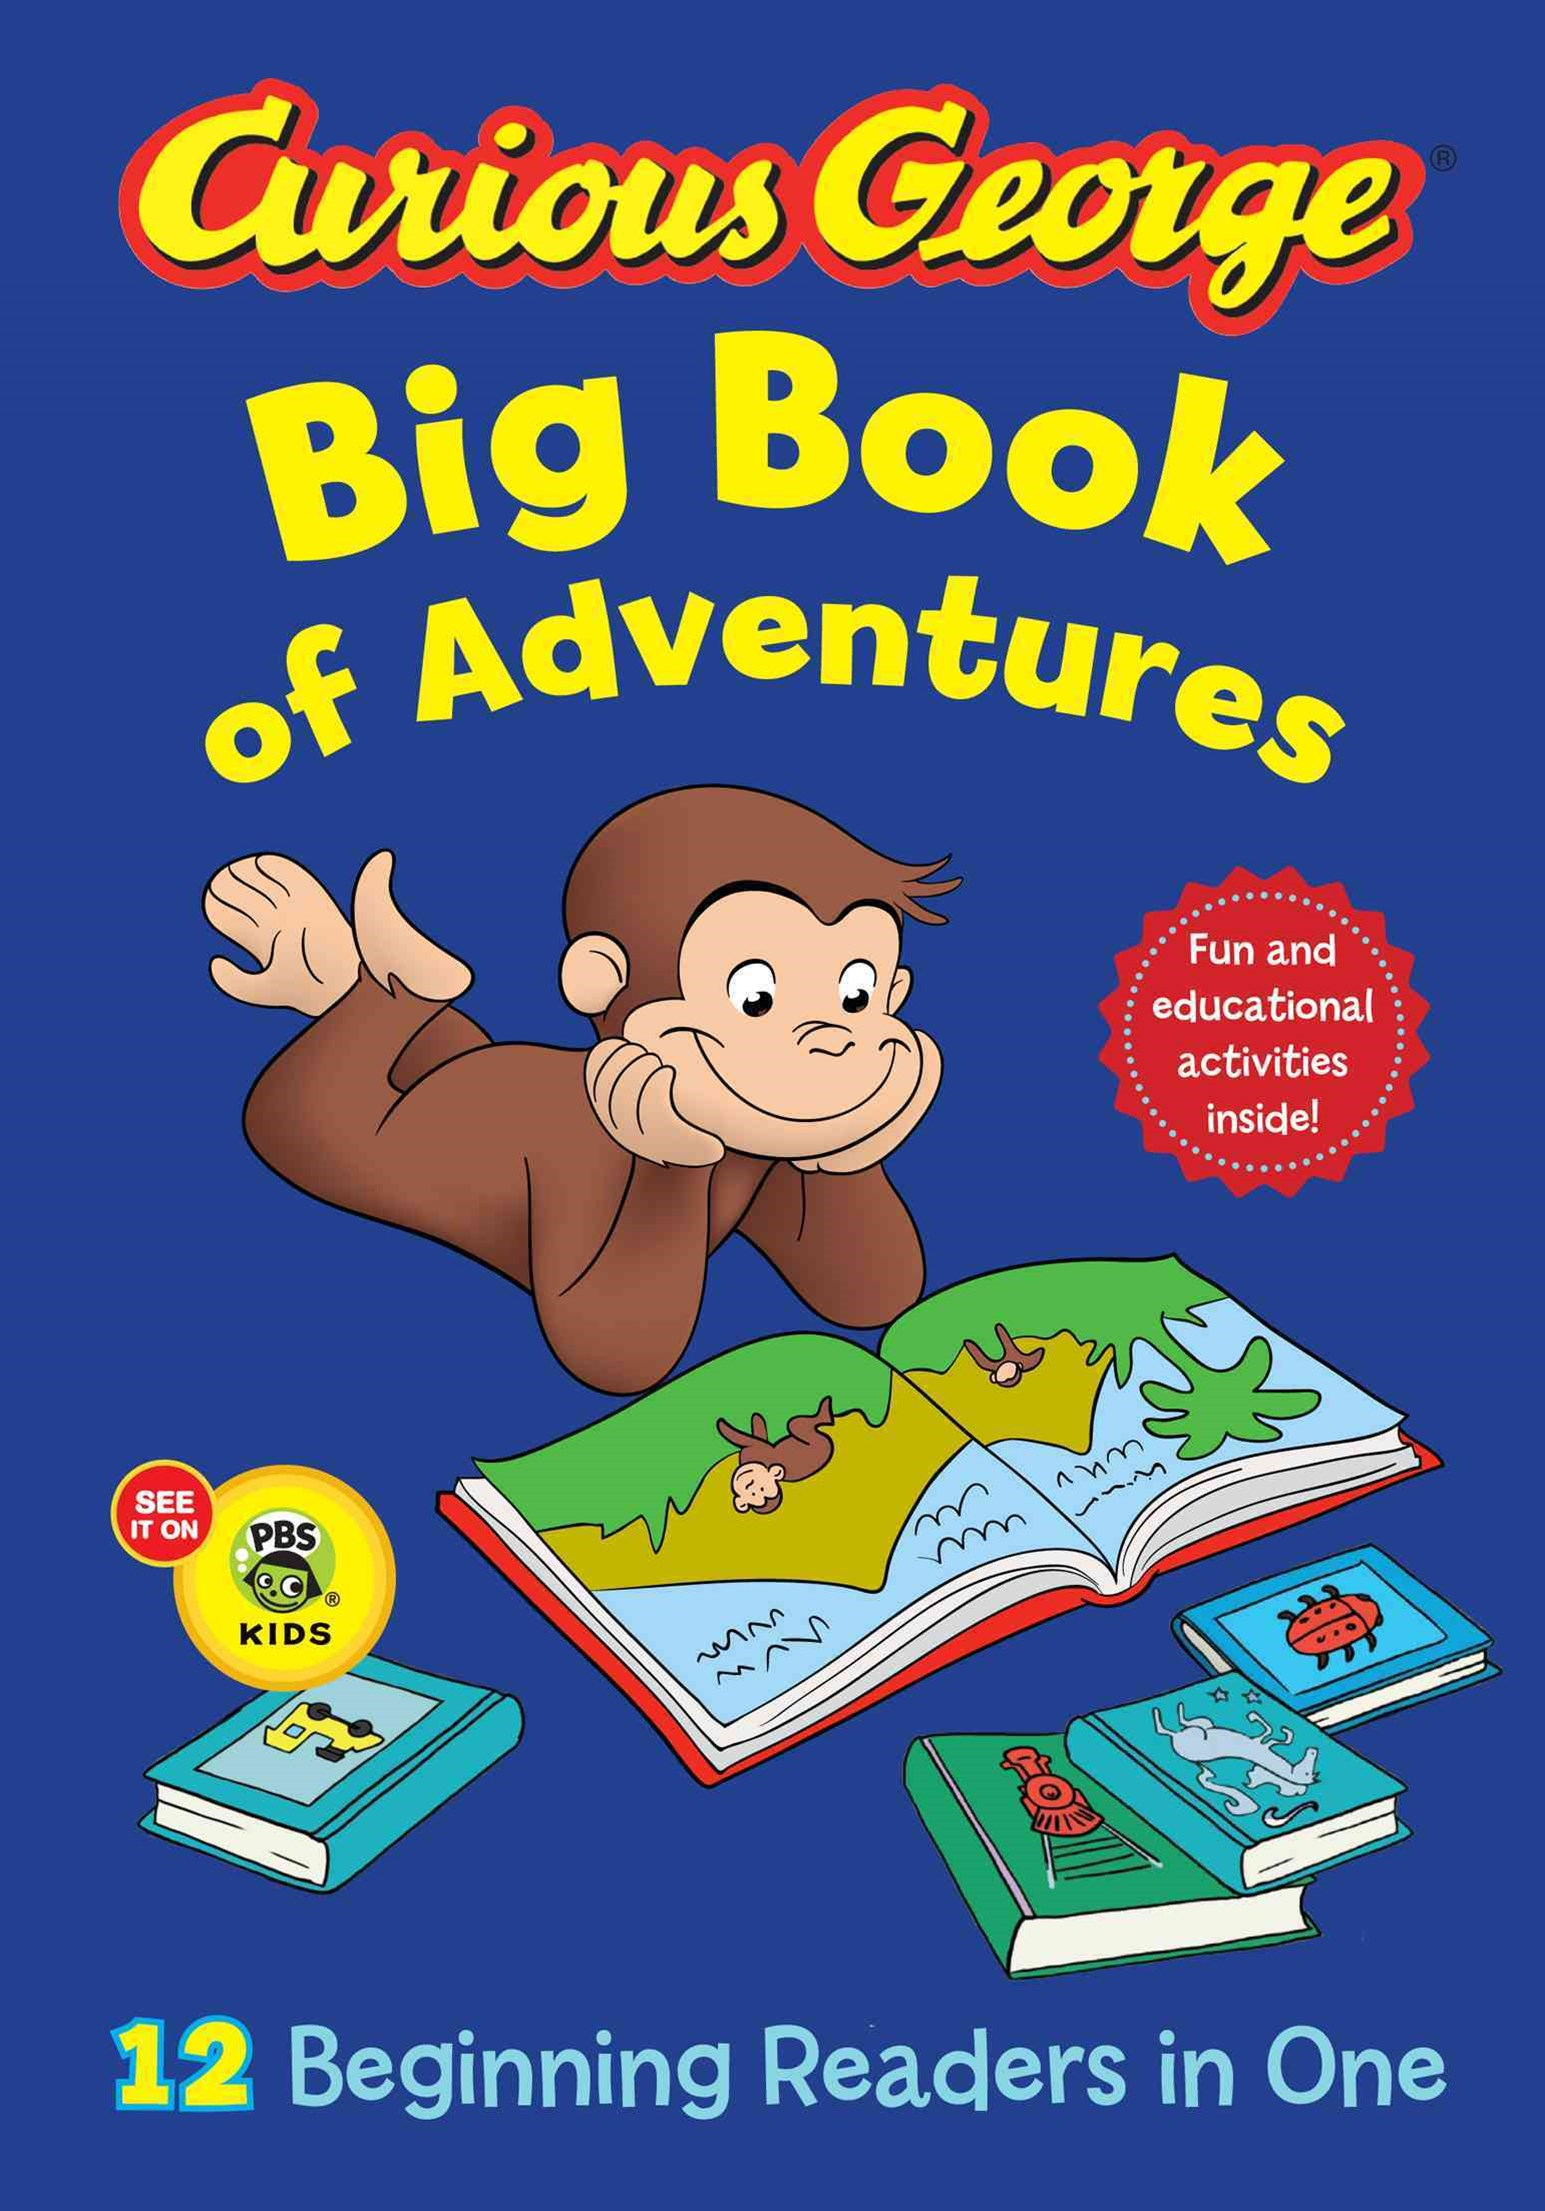 Curious George Big Book of Adventures (CGTV): 12 Beginners readers in One